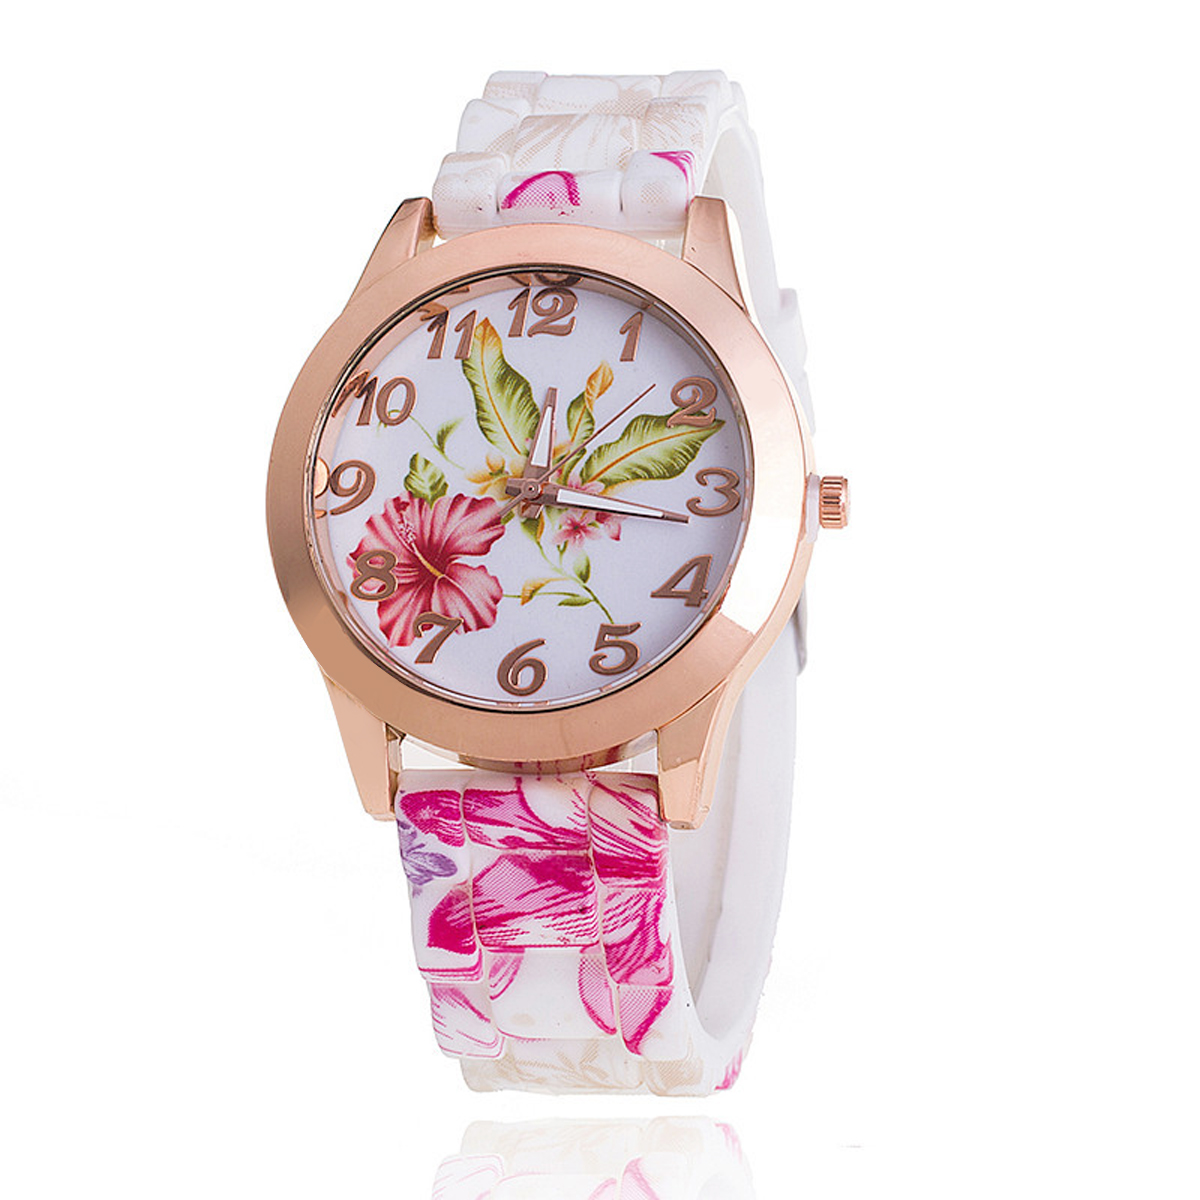 Fashion Colorful Women Girl Casual Dress Watch Silicone Rose Flower Print Jelly Quartz WristWatches Clock reloj mujer Wholesales